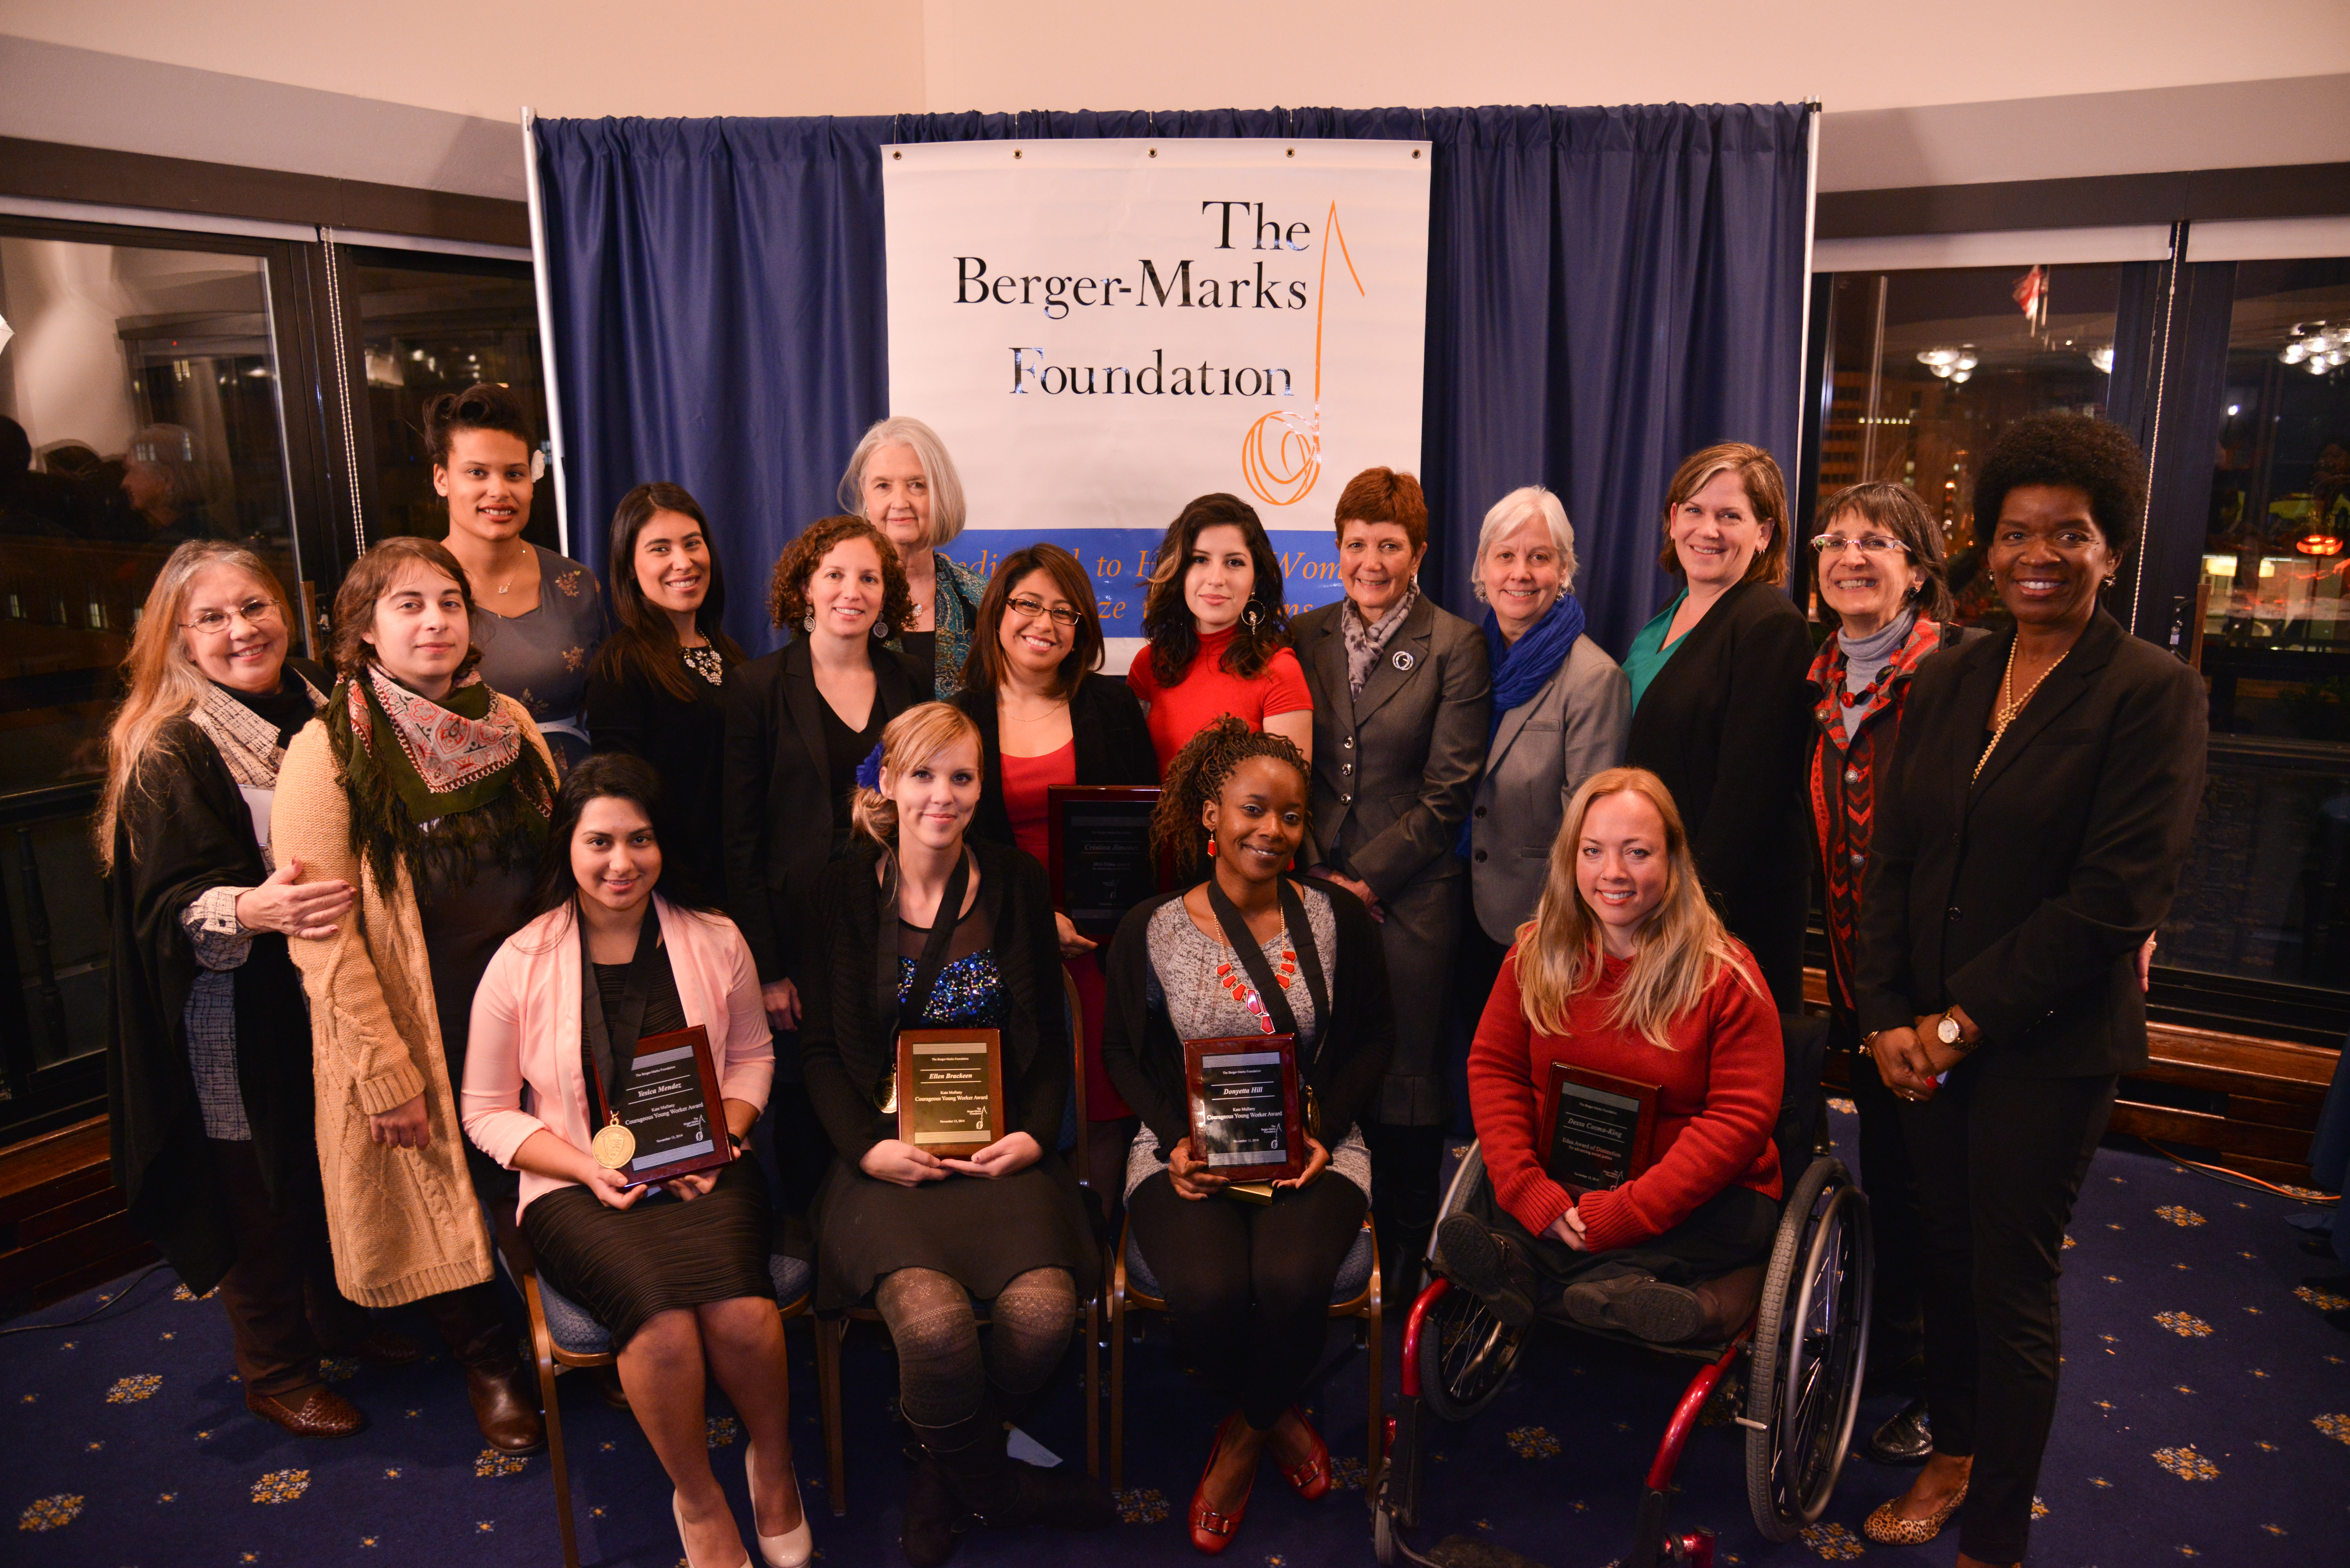 Edna and Kate Mullany award winners, judges, and finalists and the Berger-Marks Foundation trustees.